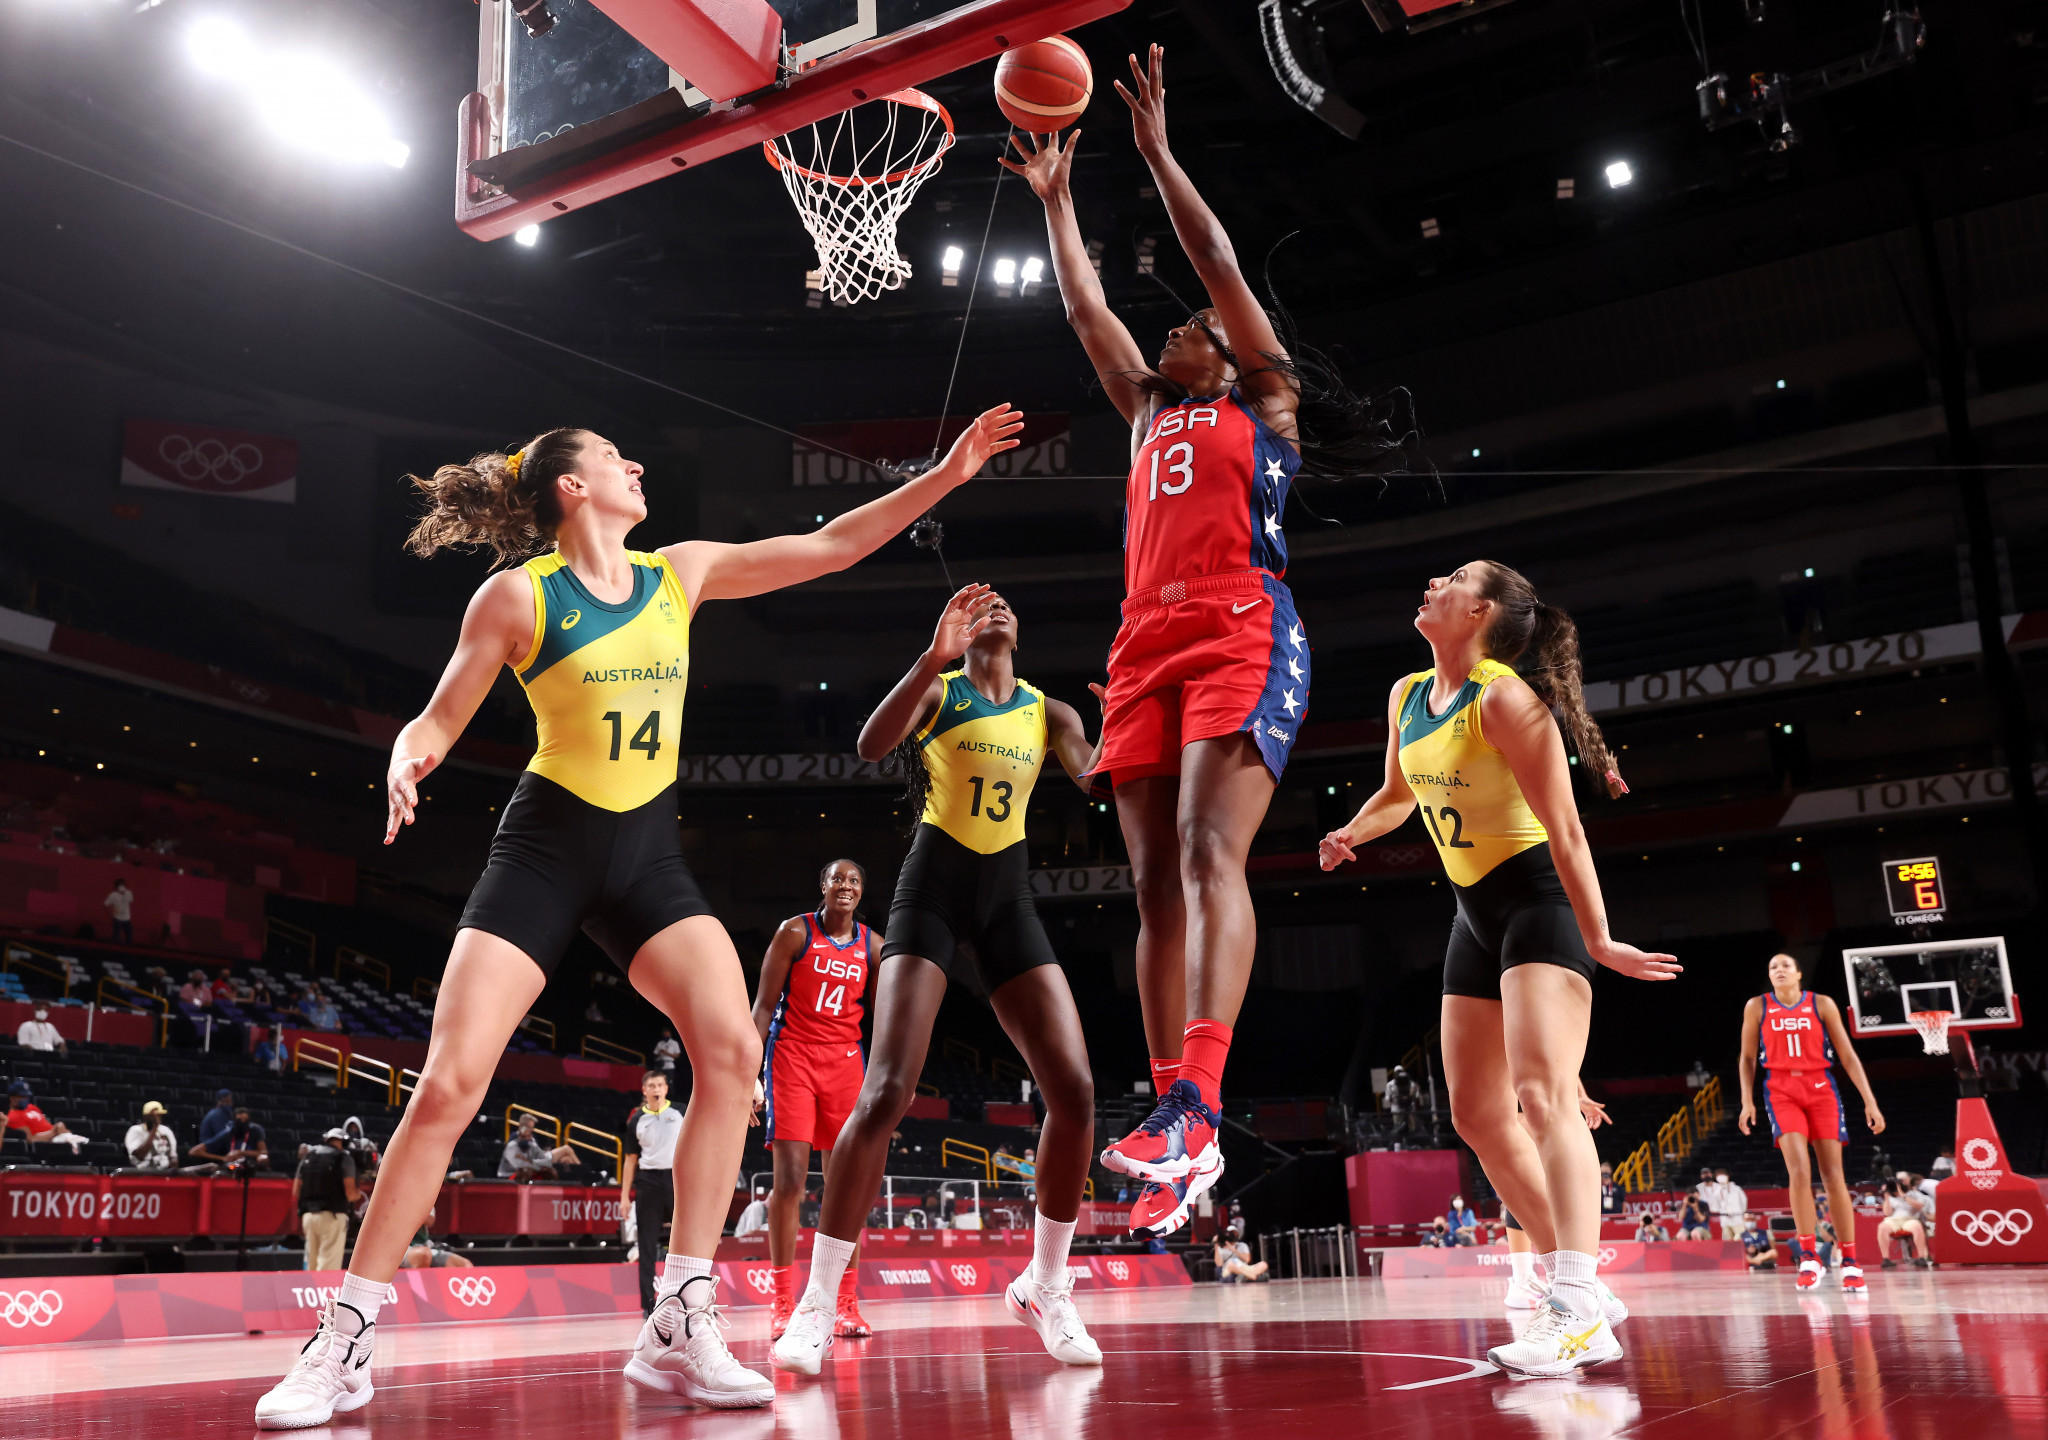 Without Liz Cambage, Australia were beaten 79-55 in the quarter-finals of the women's basketball tournament at Tokyo 2020 ©Getty Images